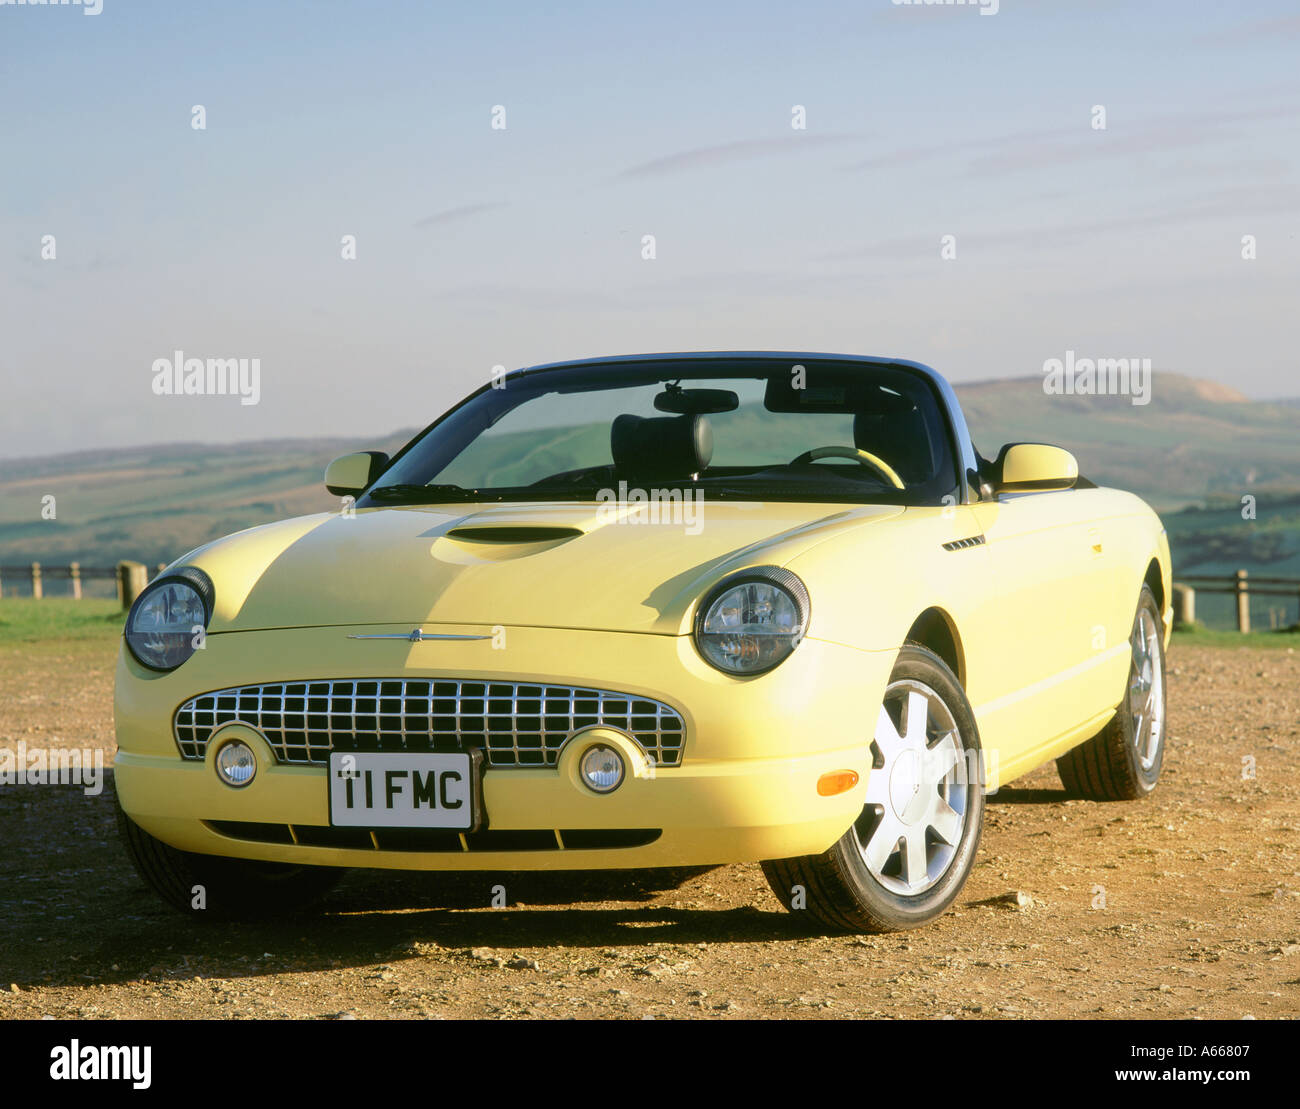 Ford Cabriolet Stock Photos & Ford Cabriolet Stock Images